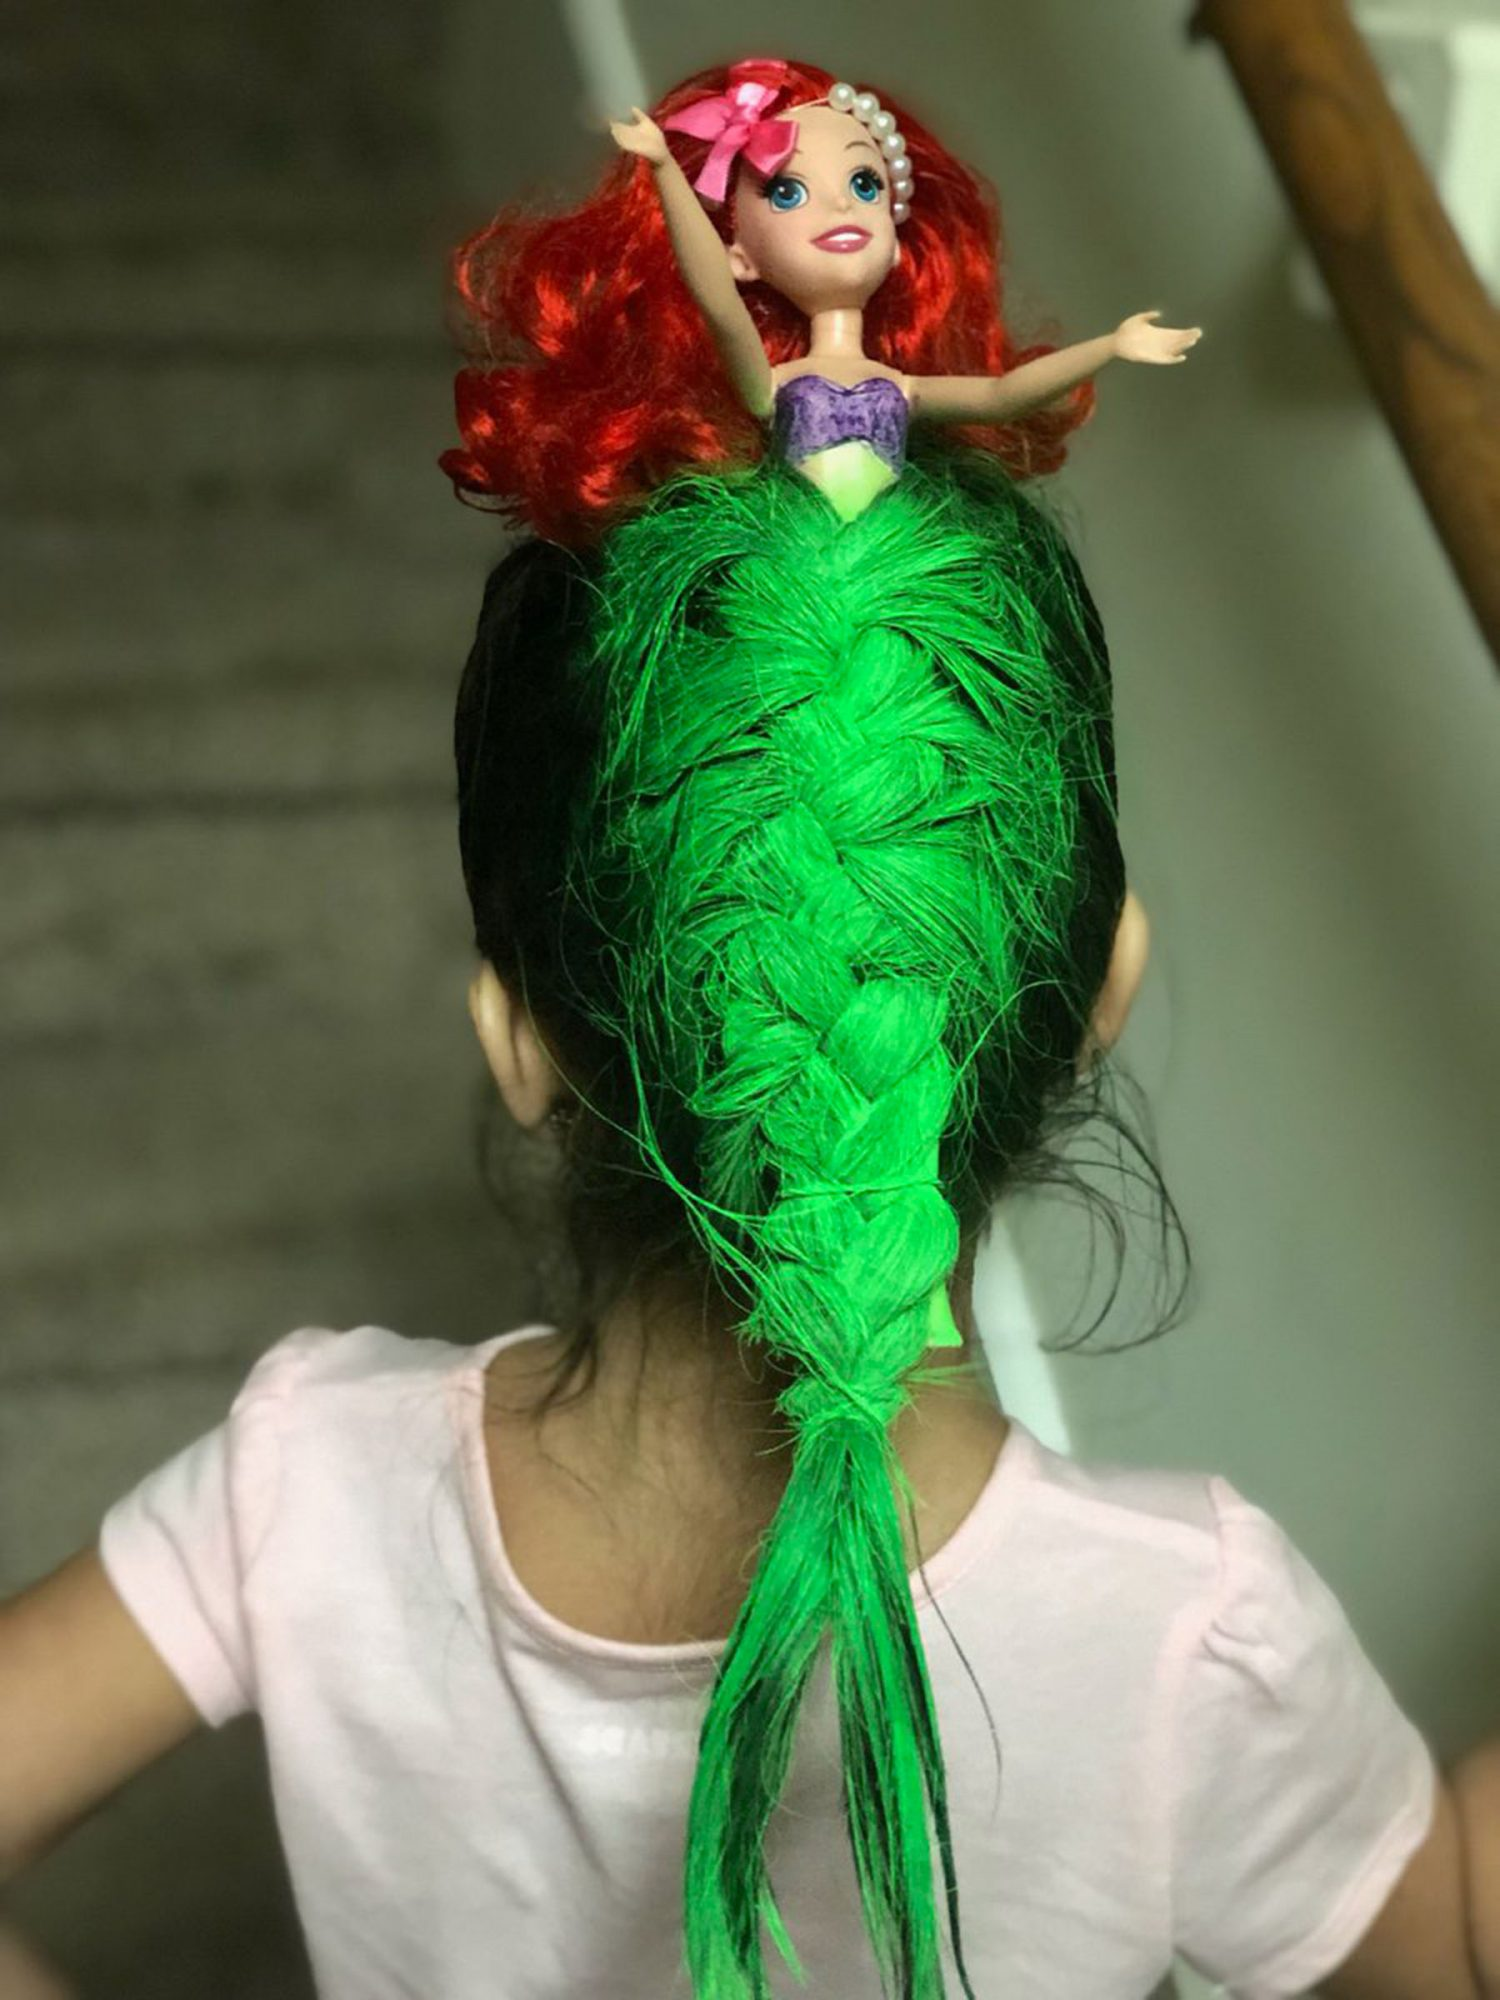 Ariel Youtuber does daughter's hair